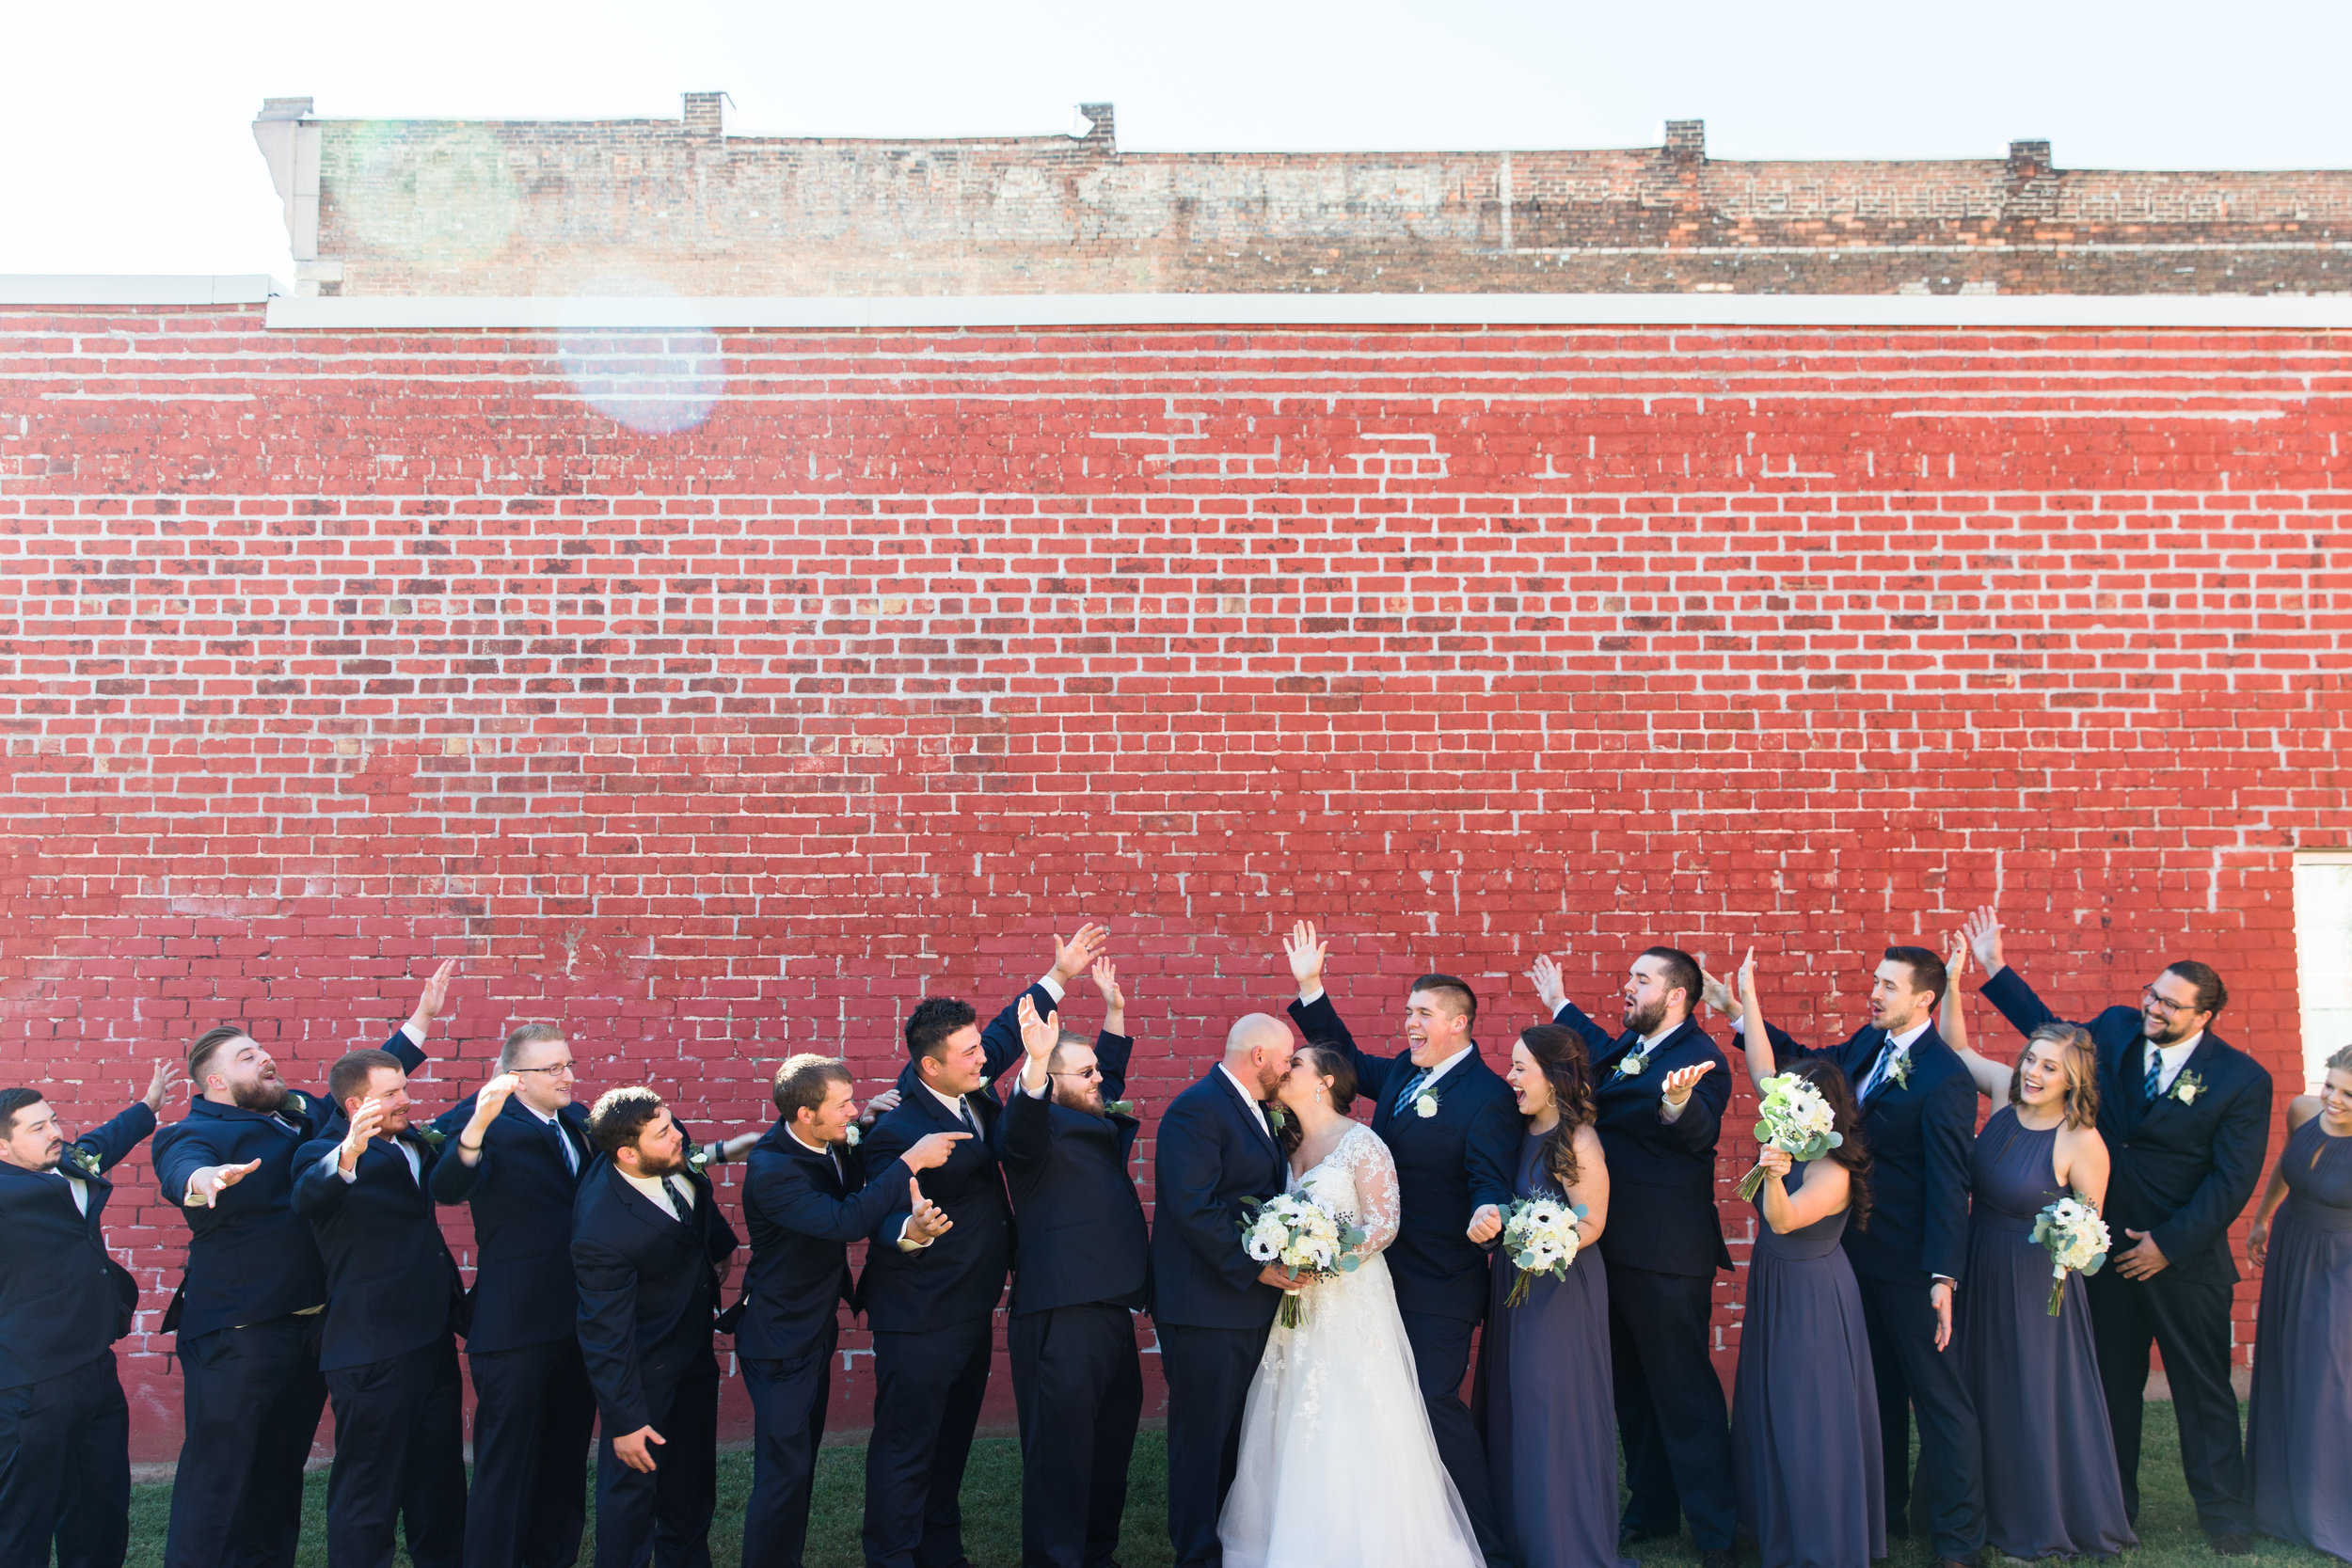 Rachel and Drew had a bomb bridal party. 8 Groomsmen, 4 Bridesmaids and 4 Bridesmen!